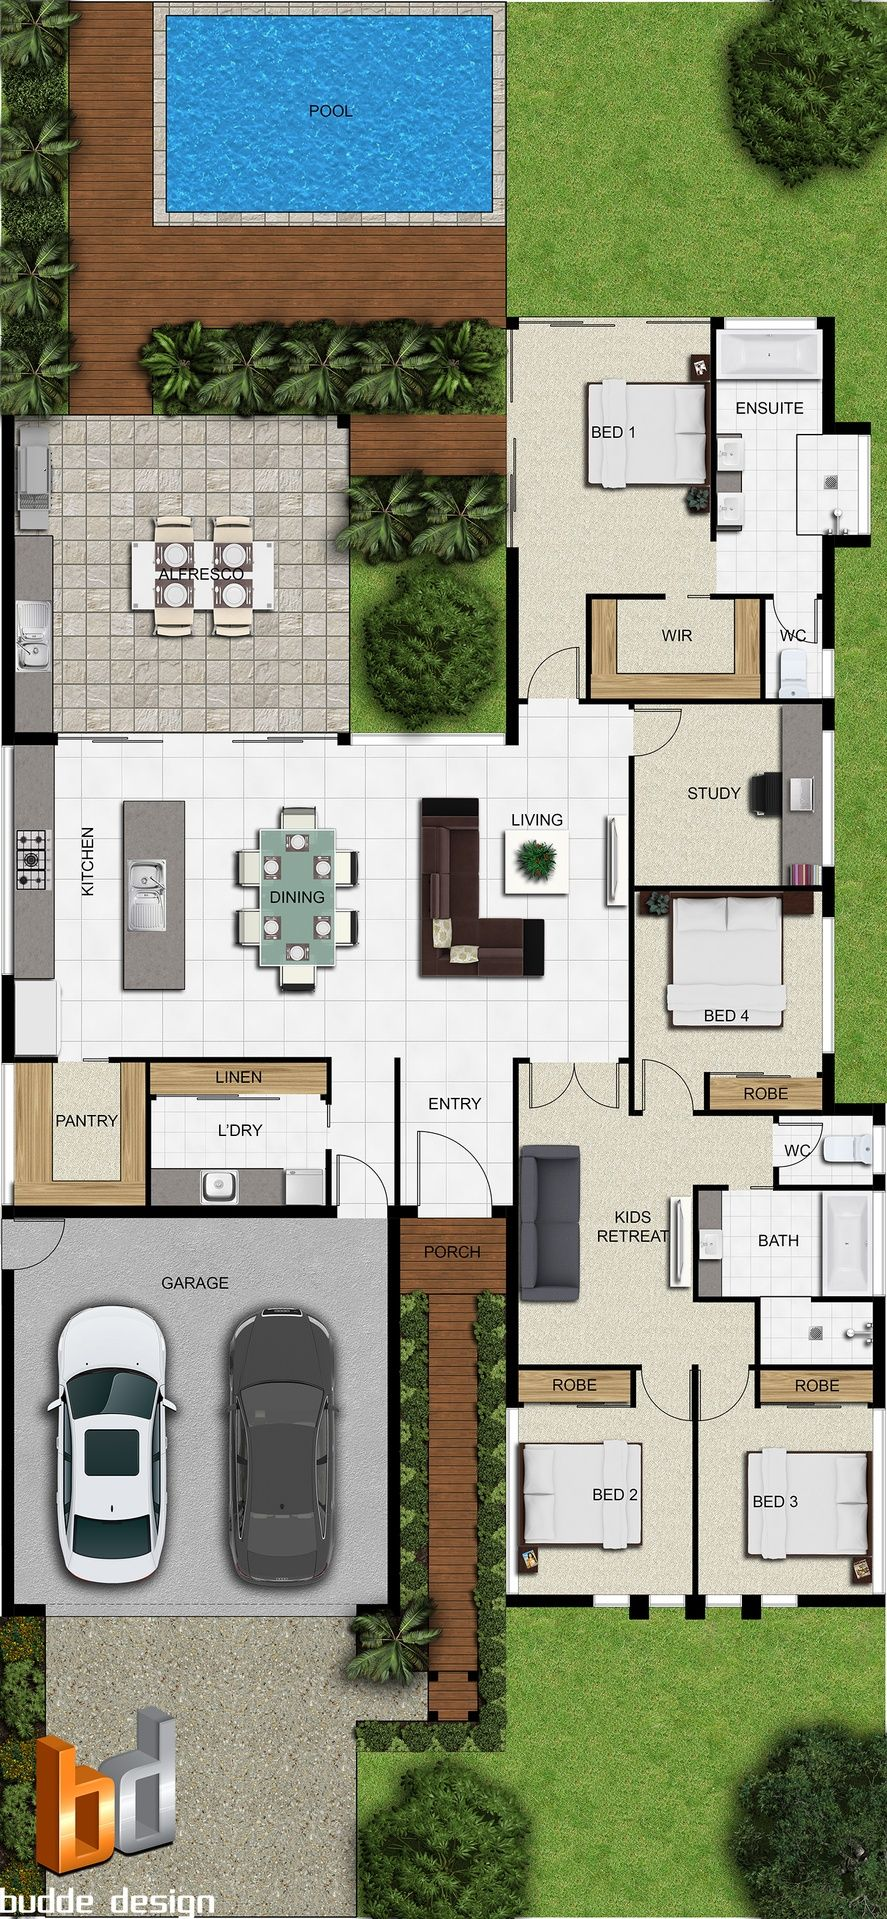 2d Plan Images Highest Quality 2d Plan Symbols Architectural Floor Plan Symbols Dream House Plans House Plans Custom Floor Plans